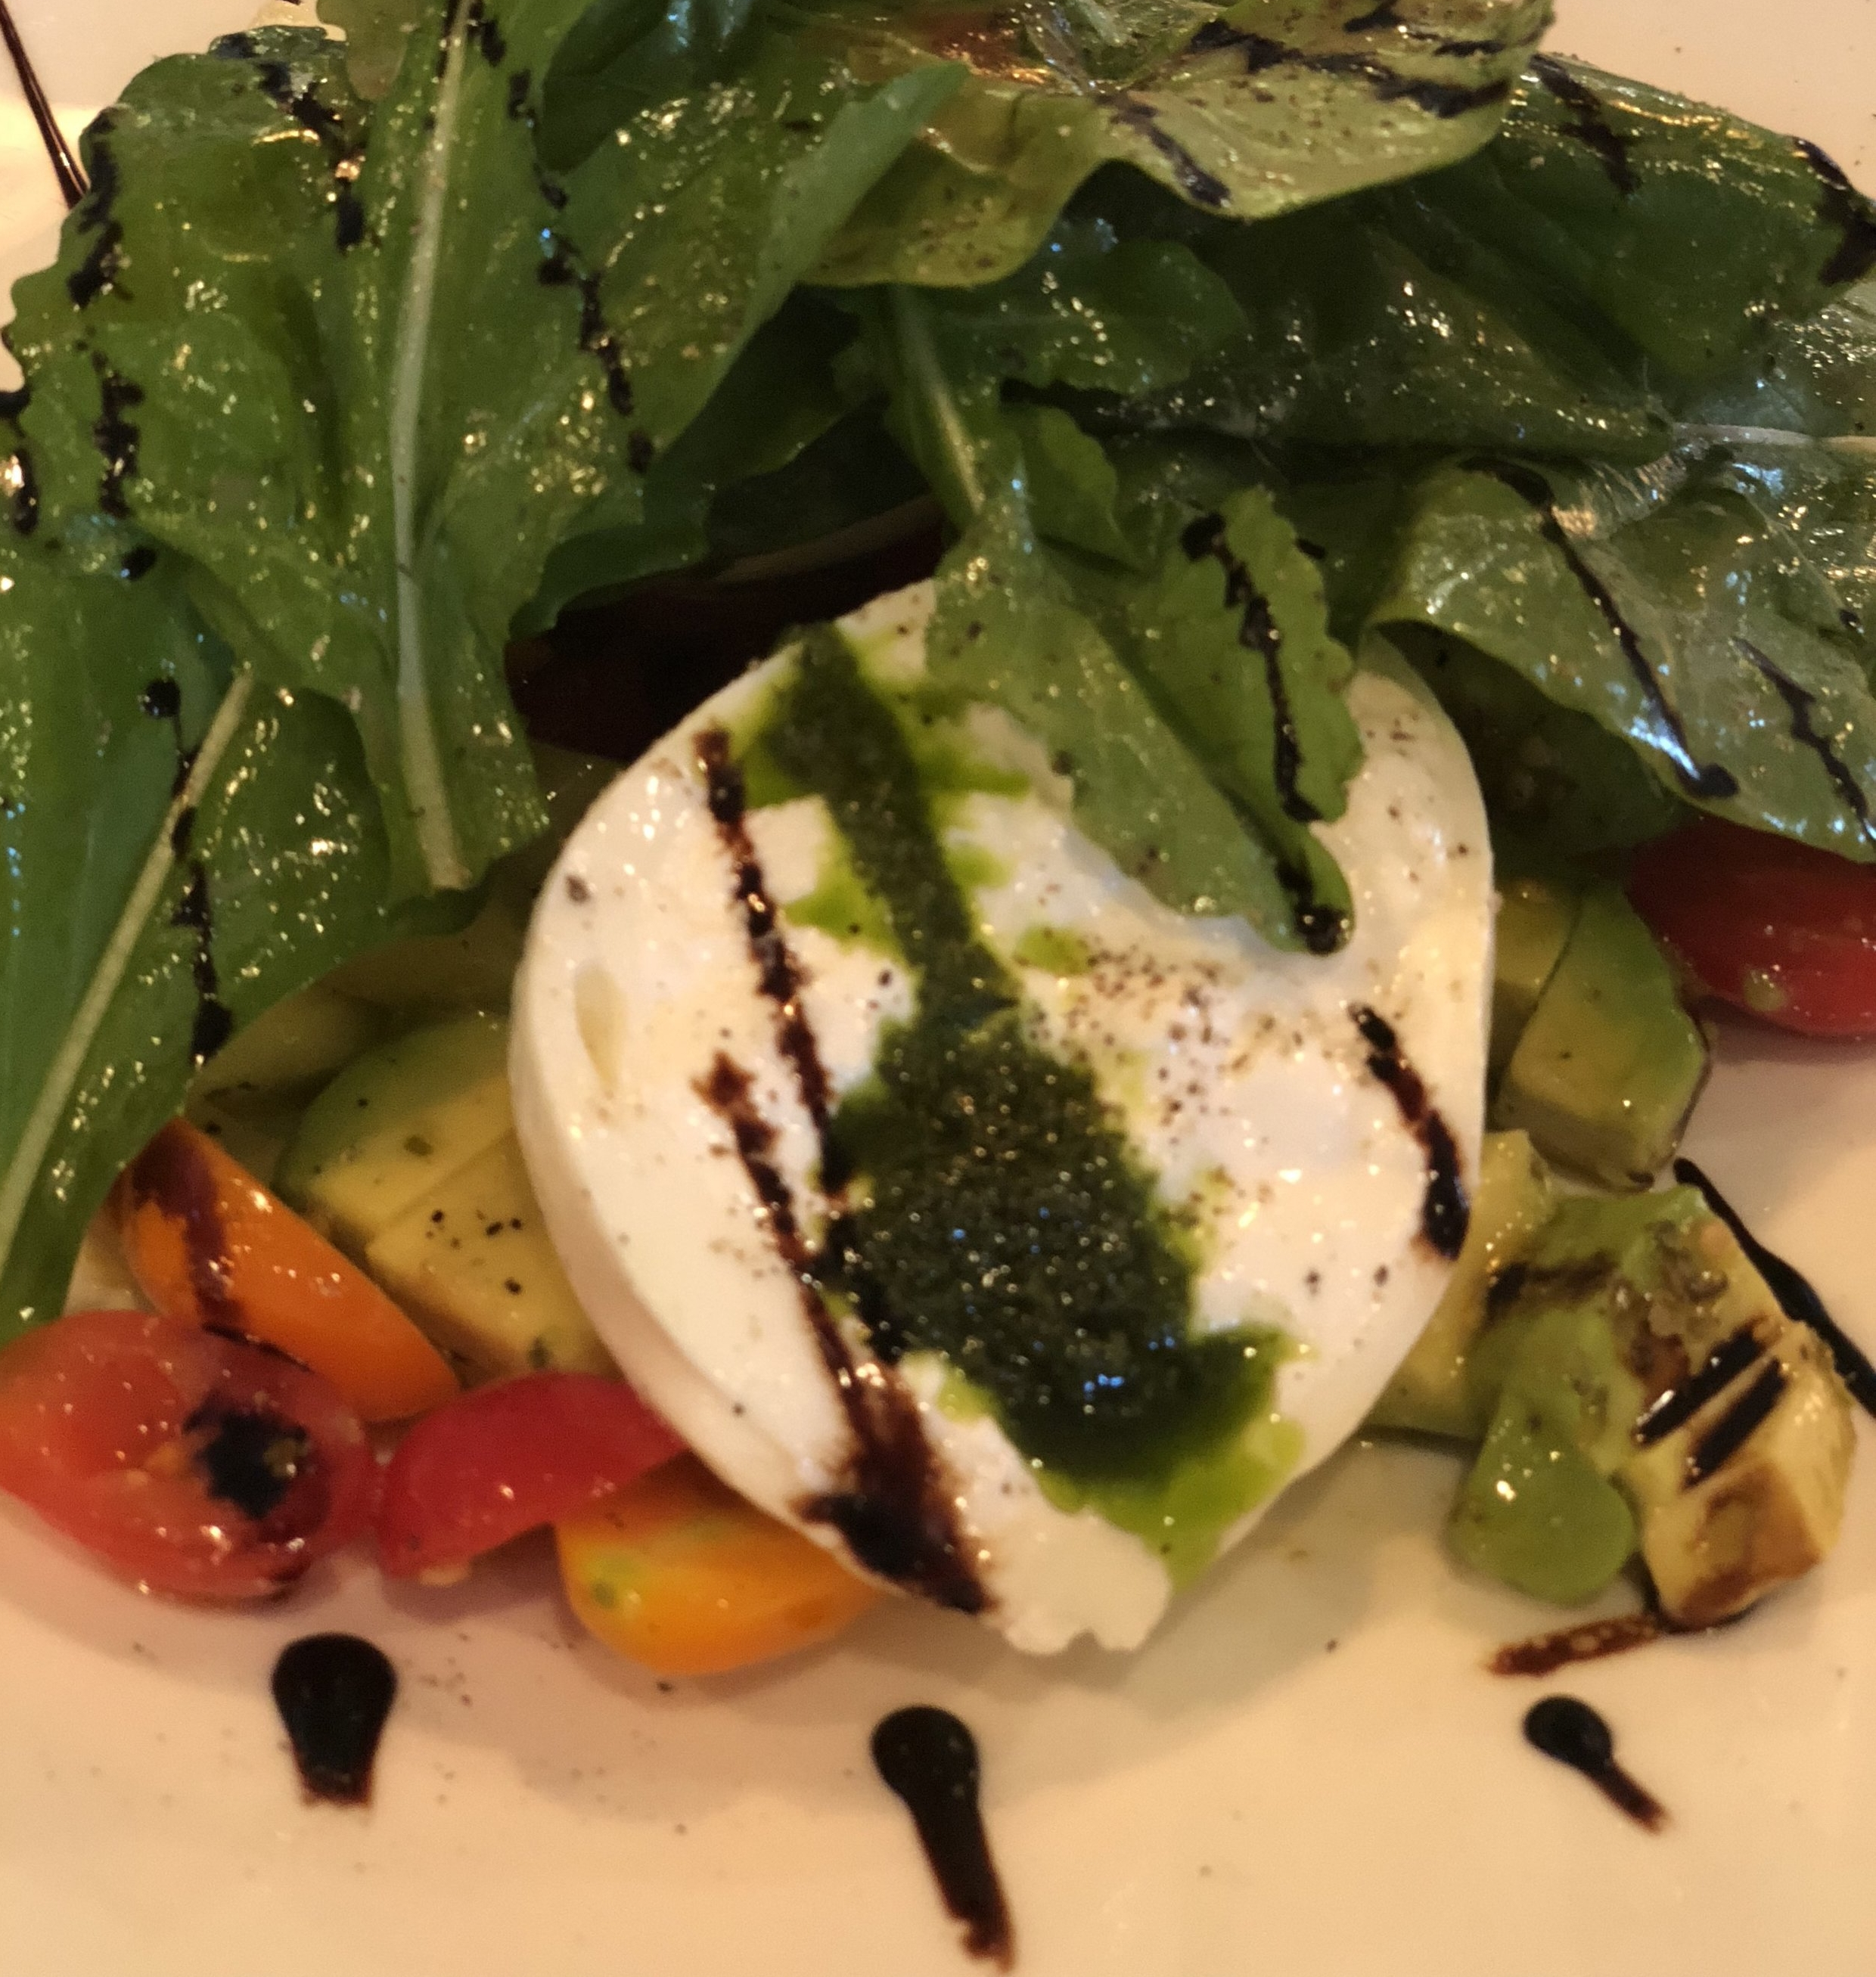 The aged balsamic compliments the creaminess of the fresh burrata.